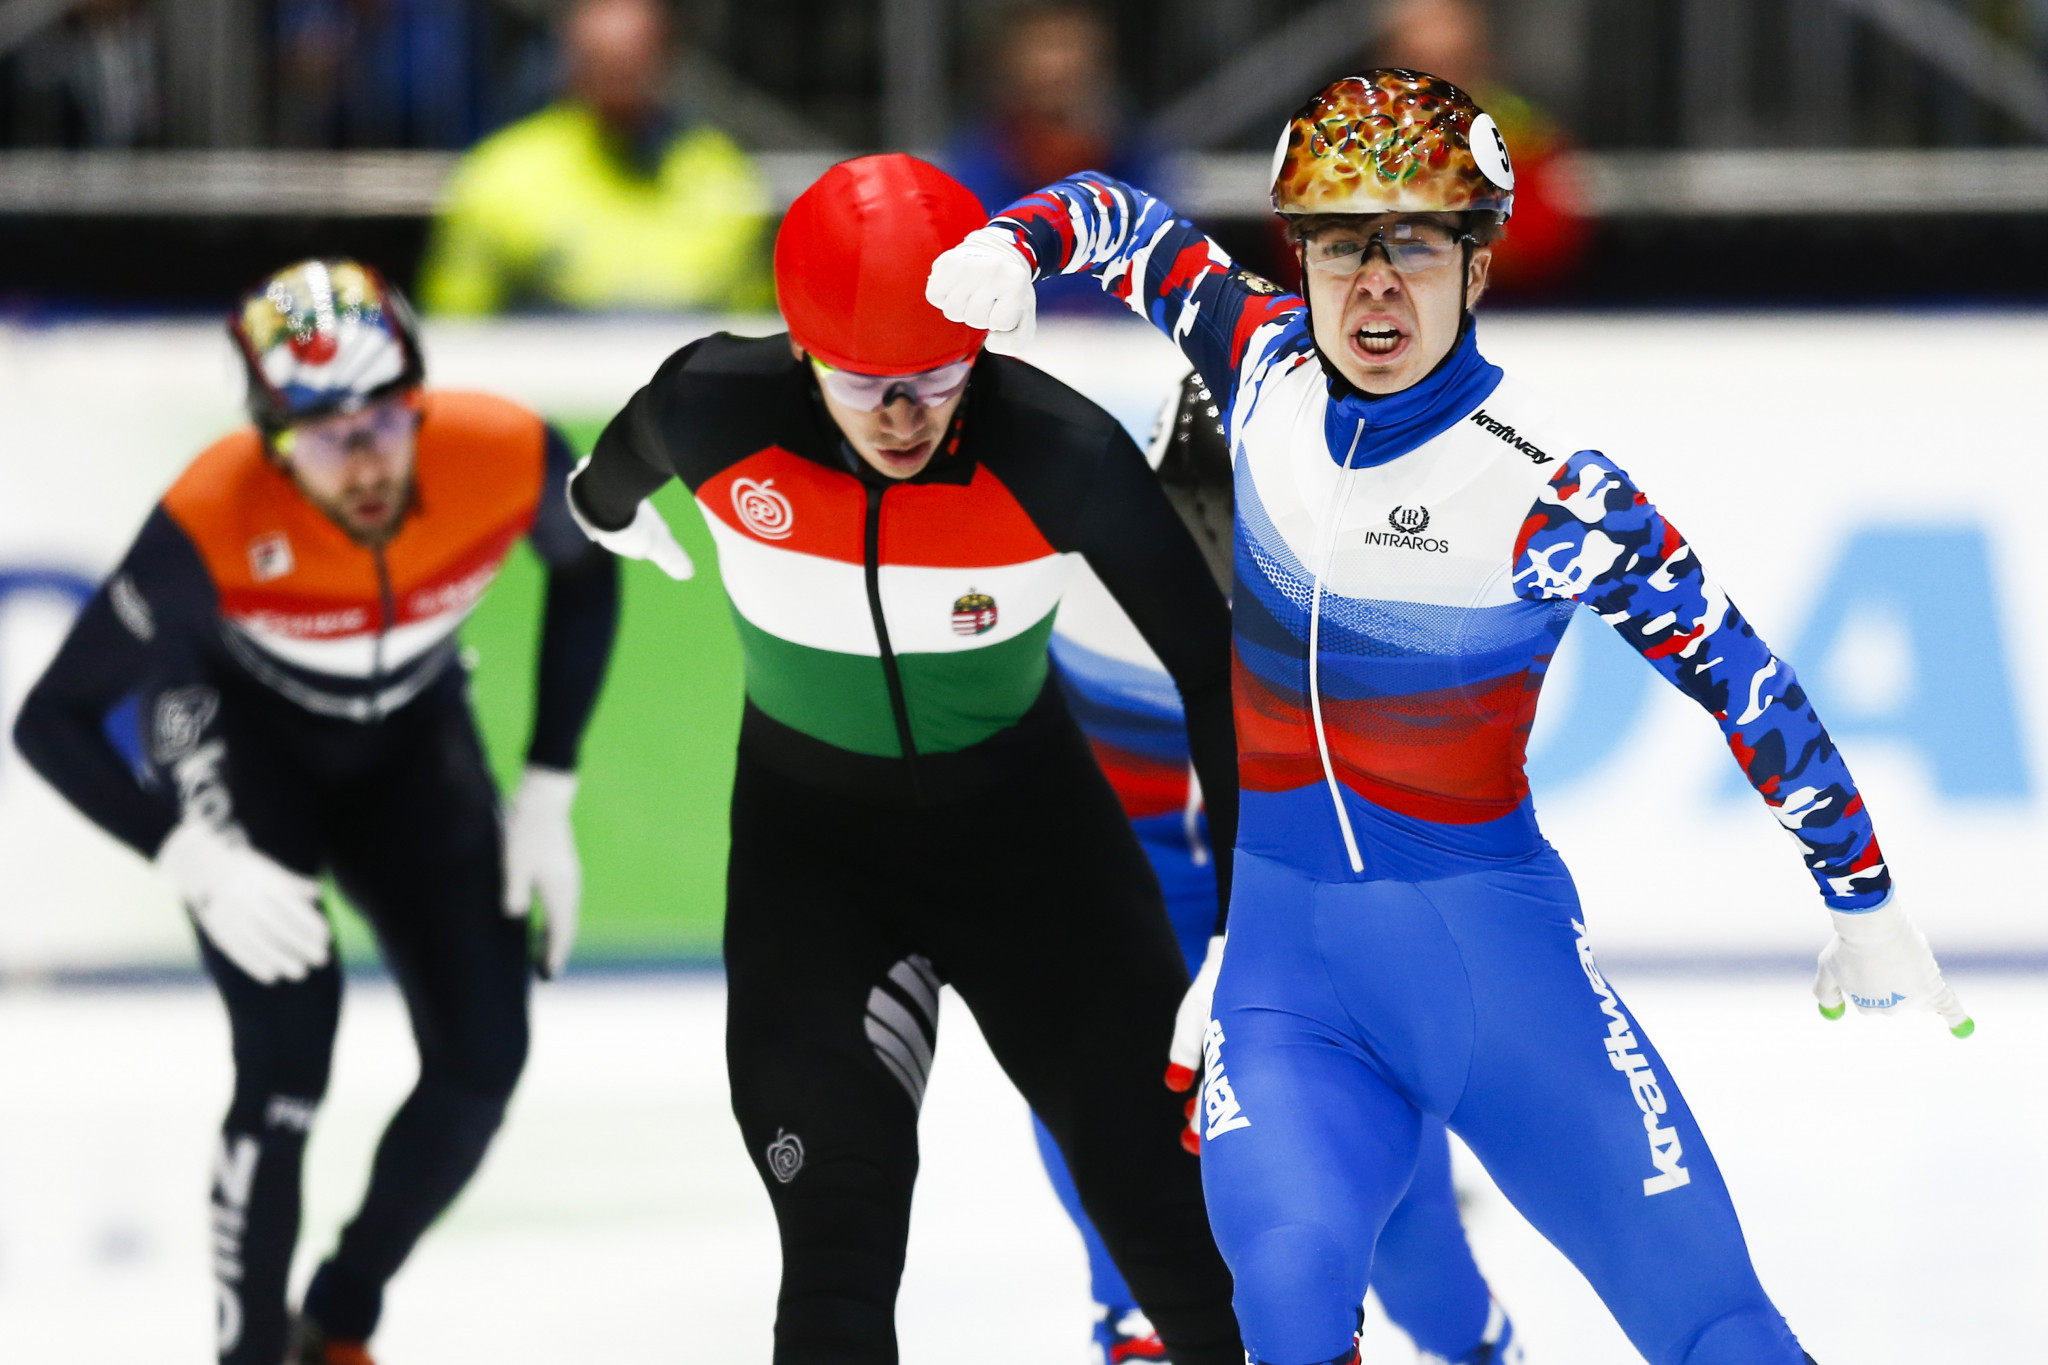 Semen Elistratov, right, of Russia celebrates winning the 1,000m final before Shaolin Sandor Liu of Hungary at the ISU European Short Track Speed Skating Championships in Dordrecht, 2019. ©Getty Images